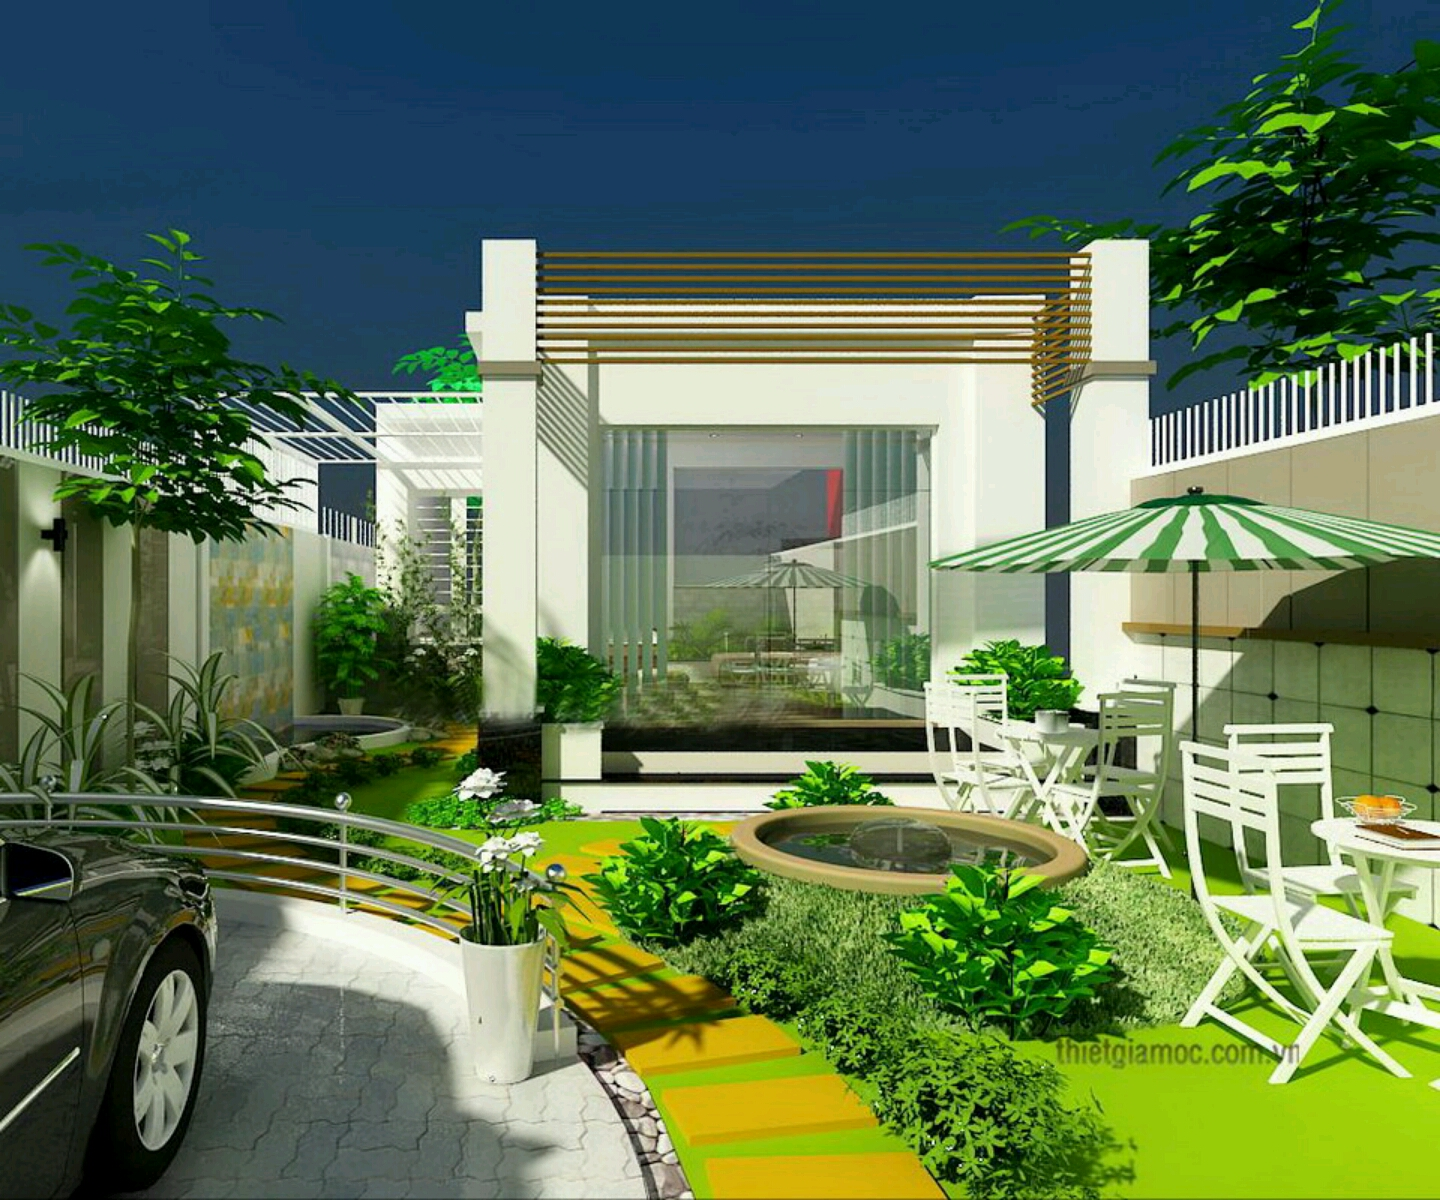 Modern homes beautiful garden designs ideas new home for House garden design ideas